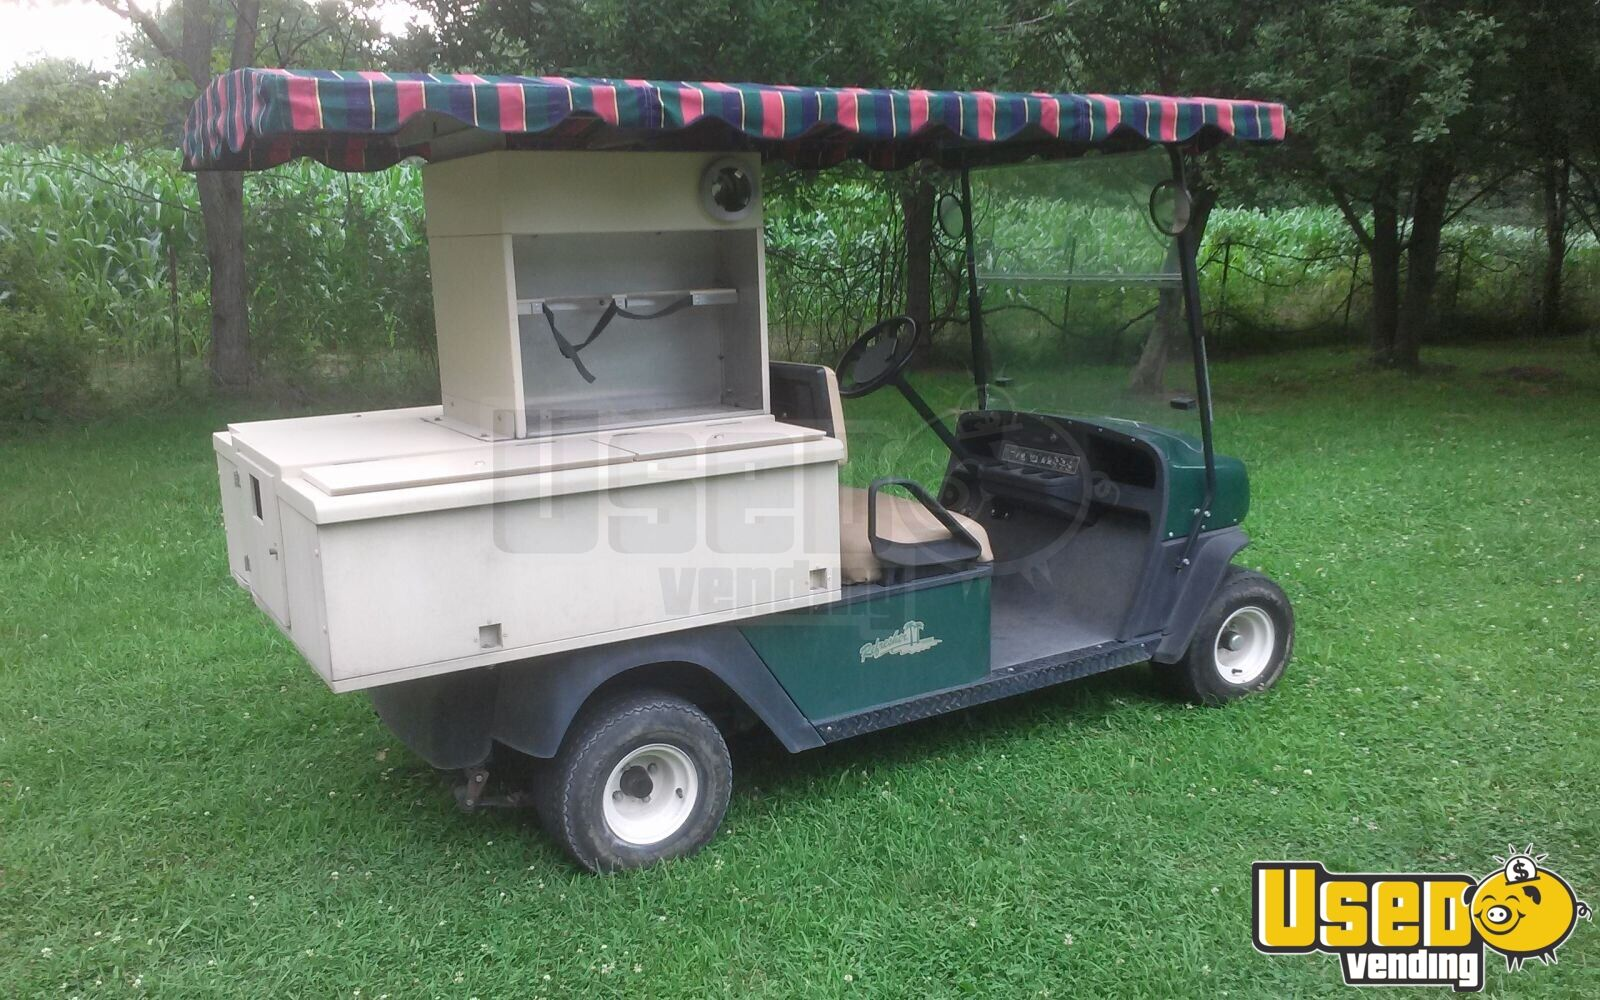 Cushman Concession Vending Golf Cold Cart for Sale in Indiana!!!